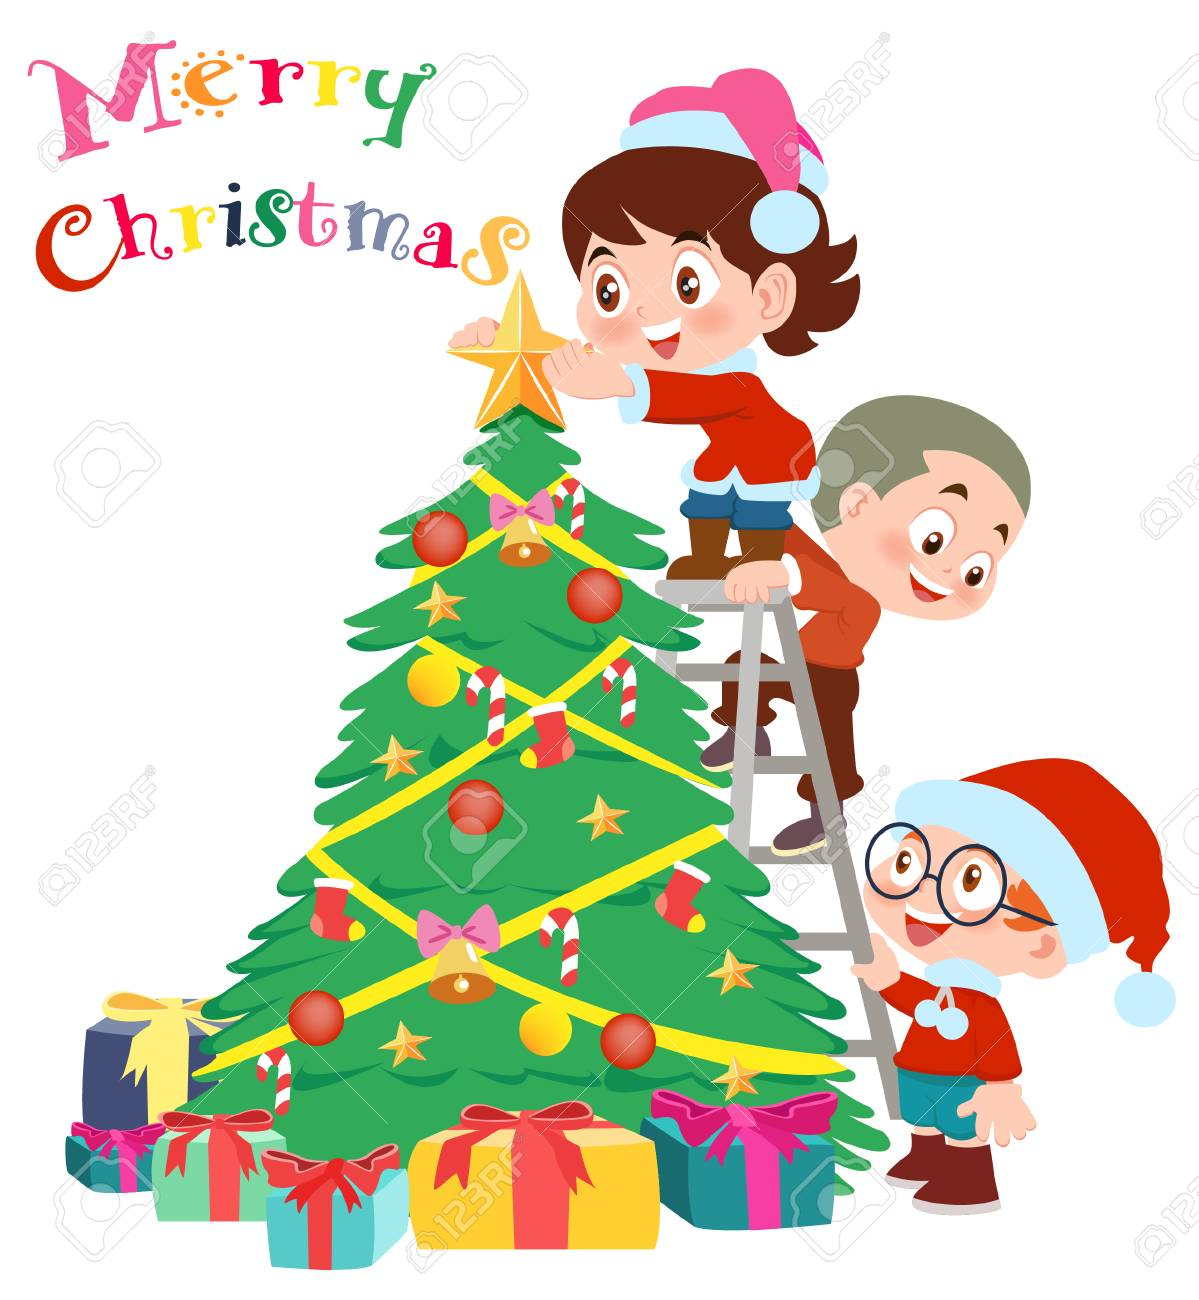 Christmas Tree And Children Vector Illustration Isolated On White Royalty Free Cliparts Vectors And Stock Illustration Image 90232171